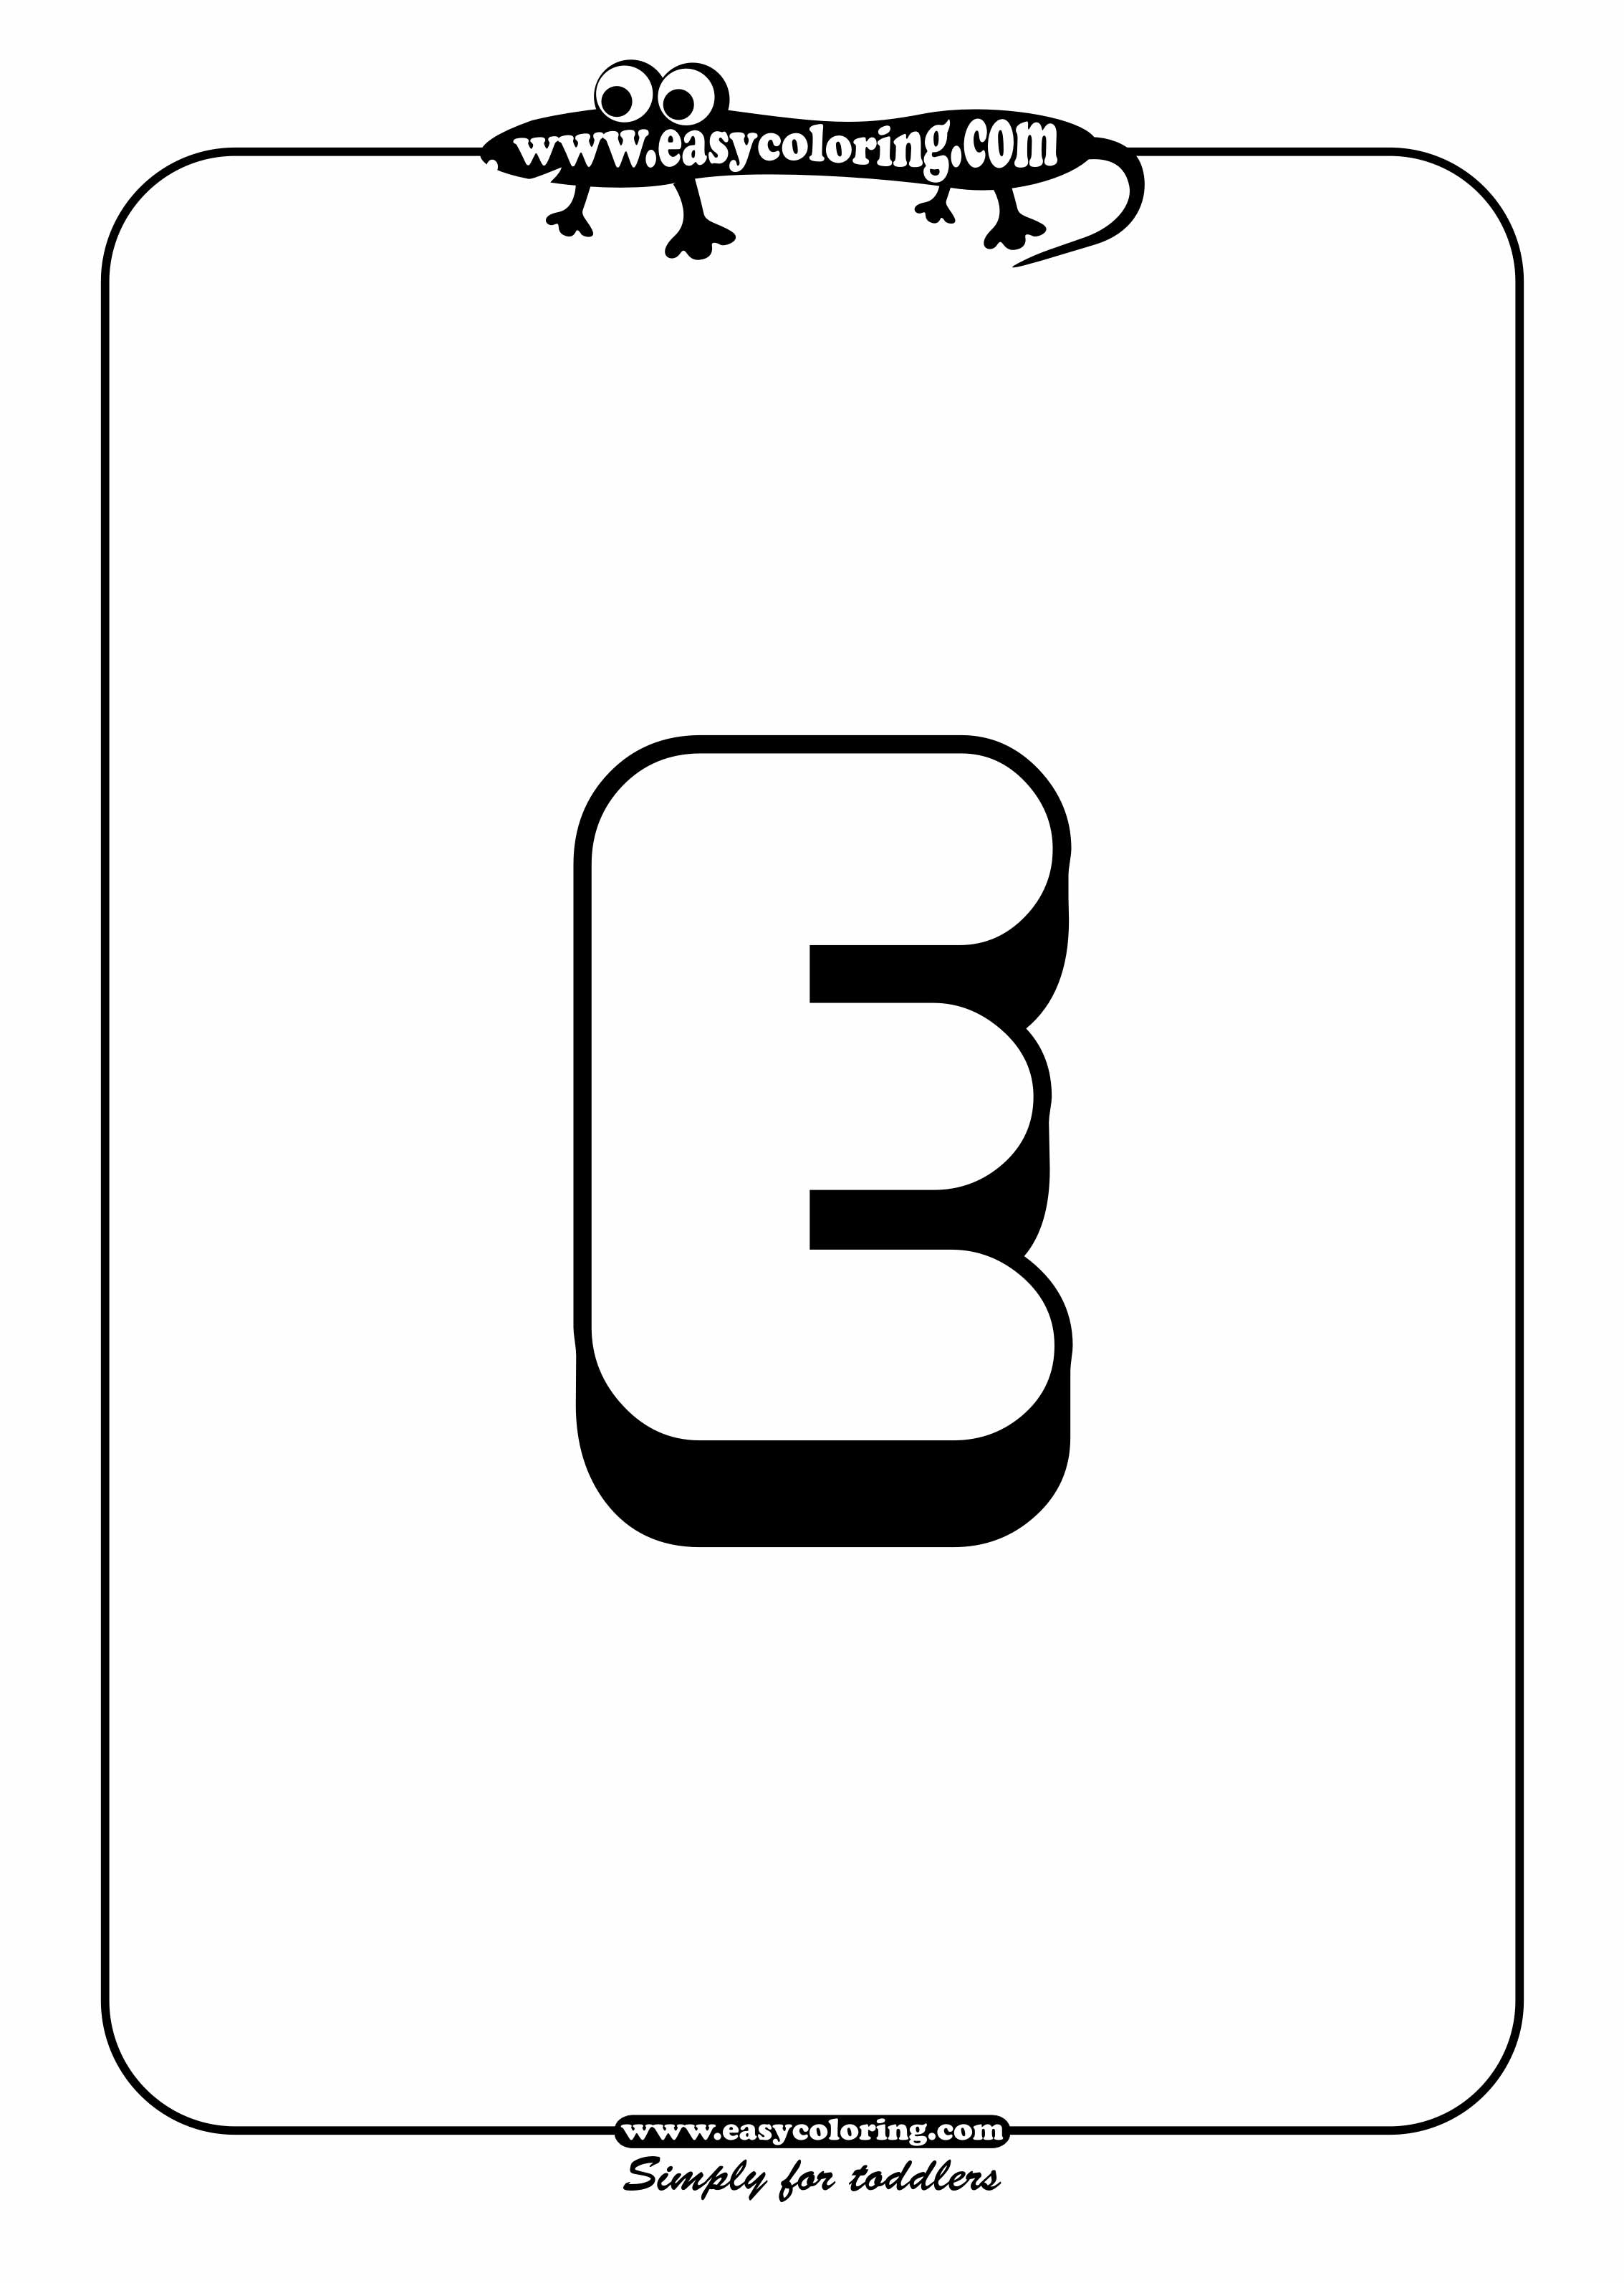 Free Coloring Pages Of Bubble Letter Lowercase E